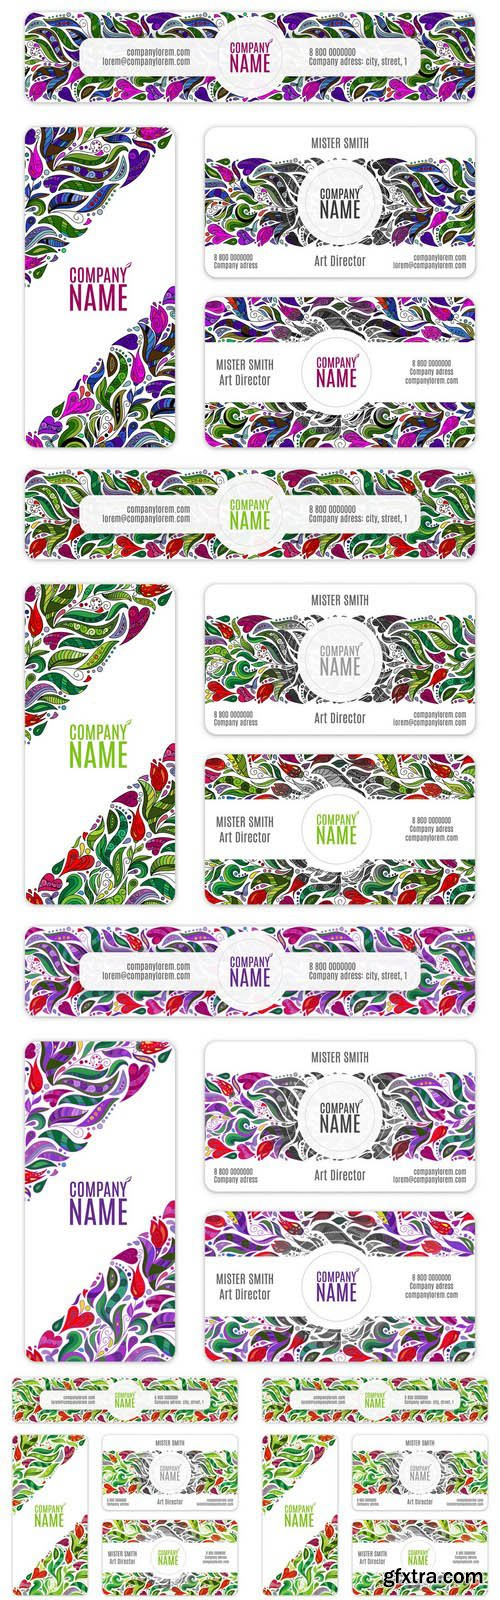 Abstract Flowers Pattern Banners - 5 Vector